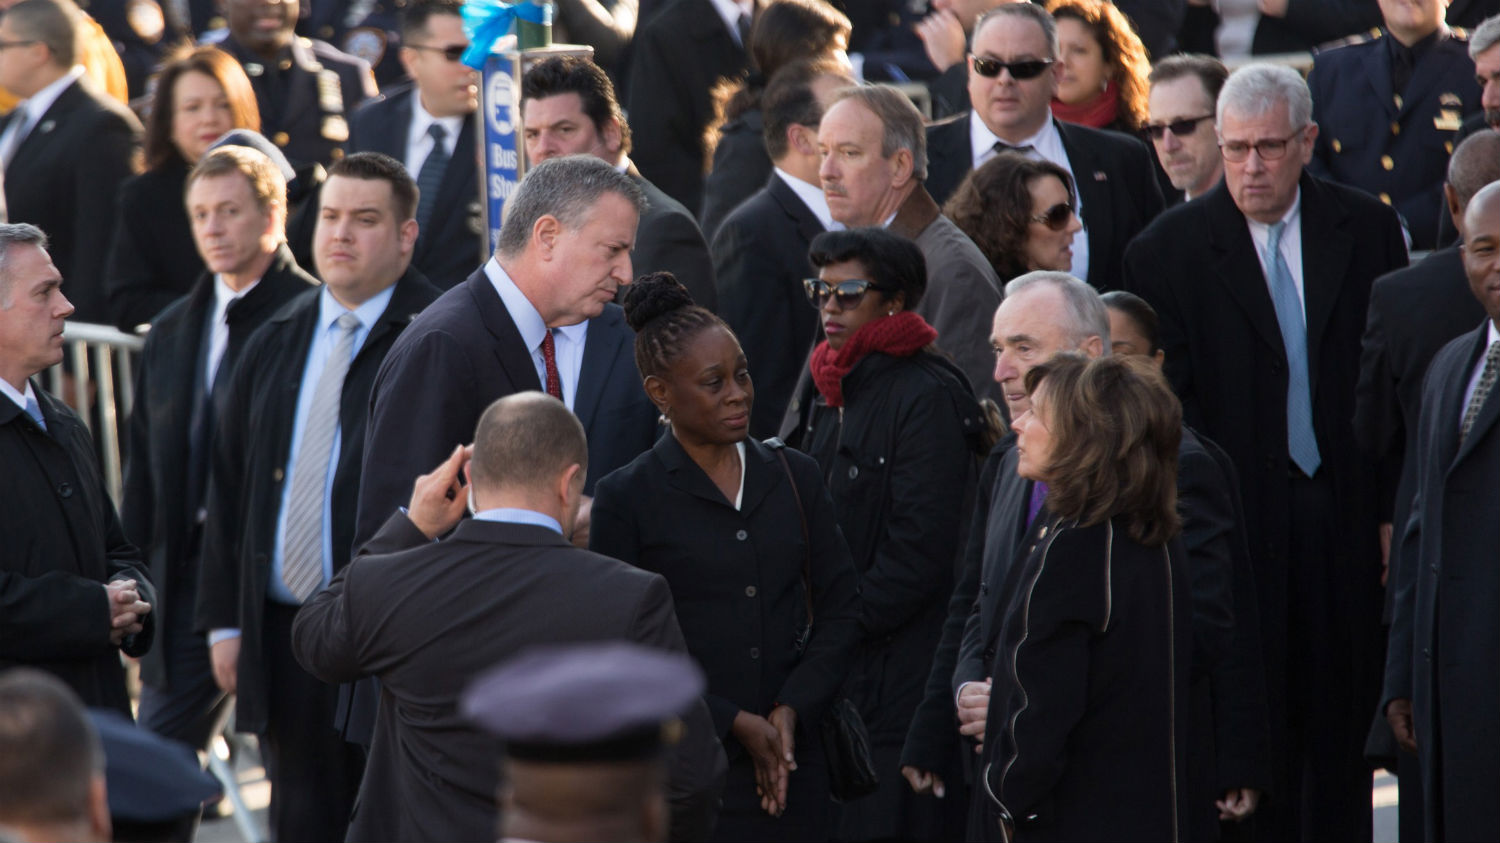 "New York Mayor Bill de Blasio and his wife, Chirlane McCray, greet Police Commissioner Bill Bratton and his wife, Rikki Klieman. ""All of this city is grieving and grieving for so many reasons, but the most personal is we've lost such a good man and a family is in such pain,"" de Blasio said during the service."